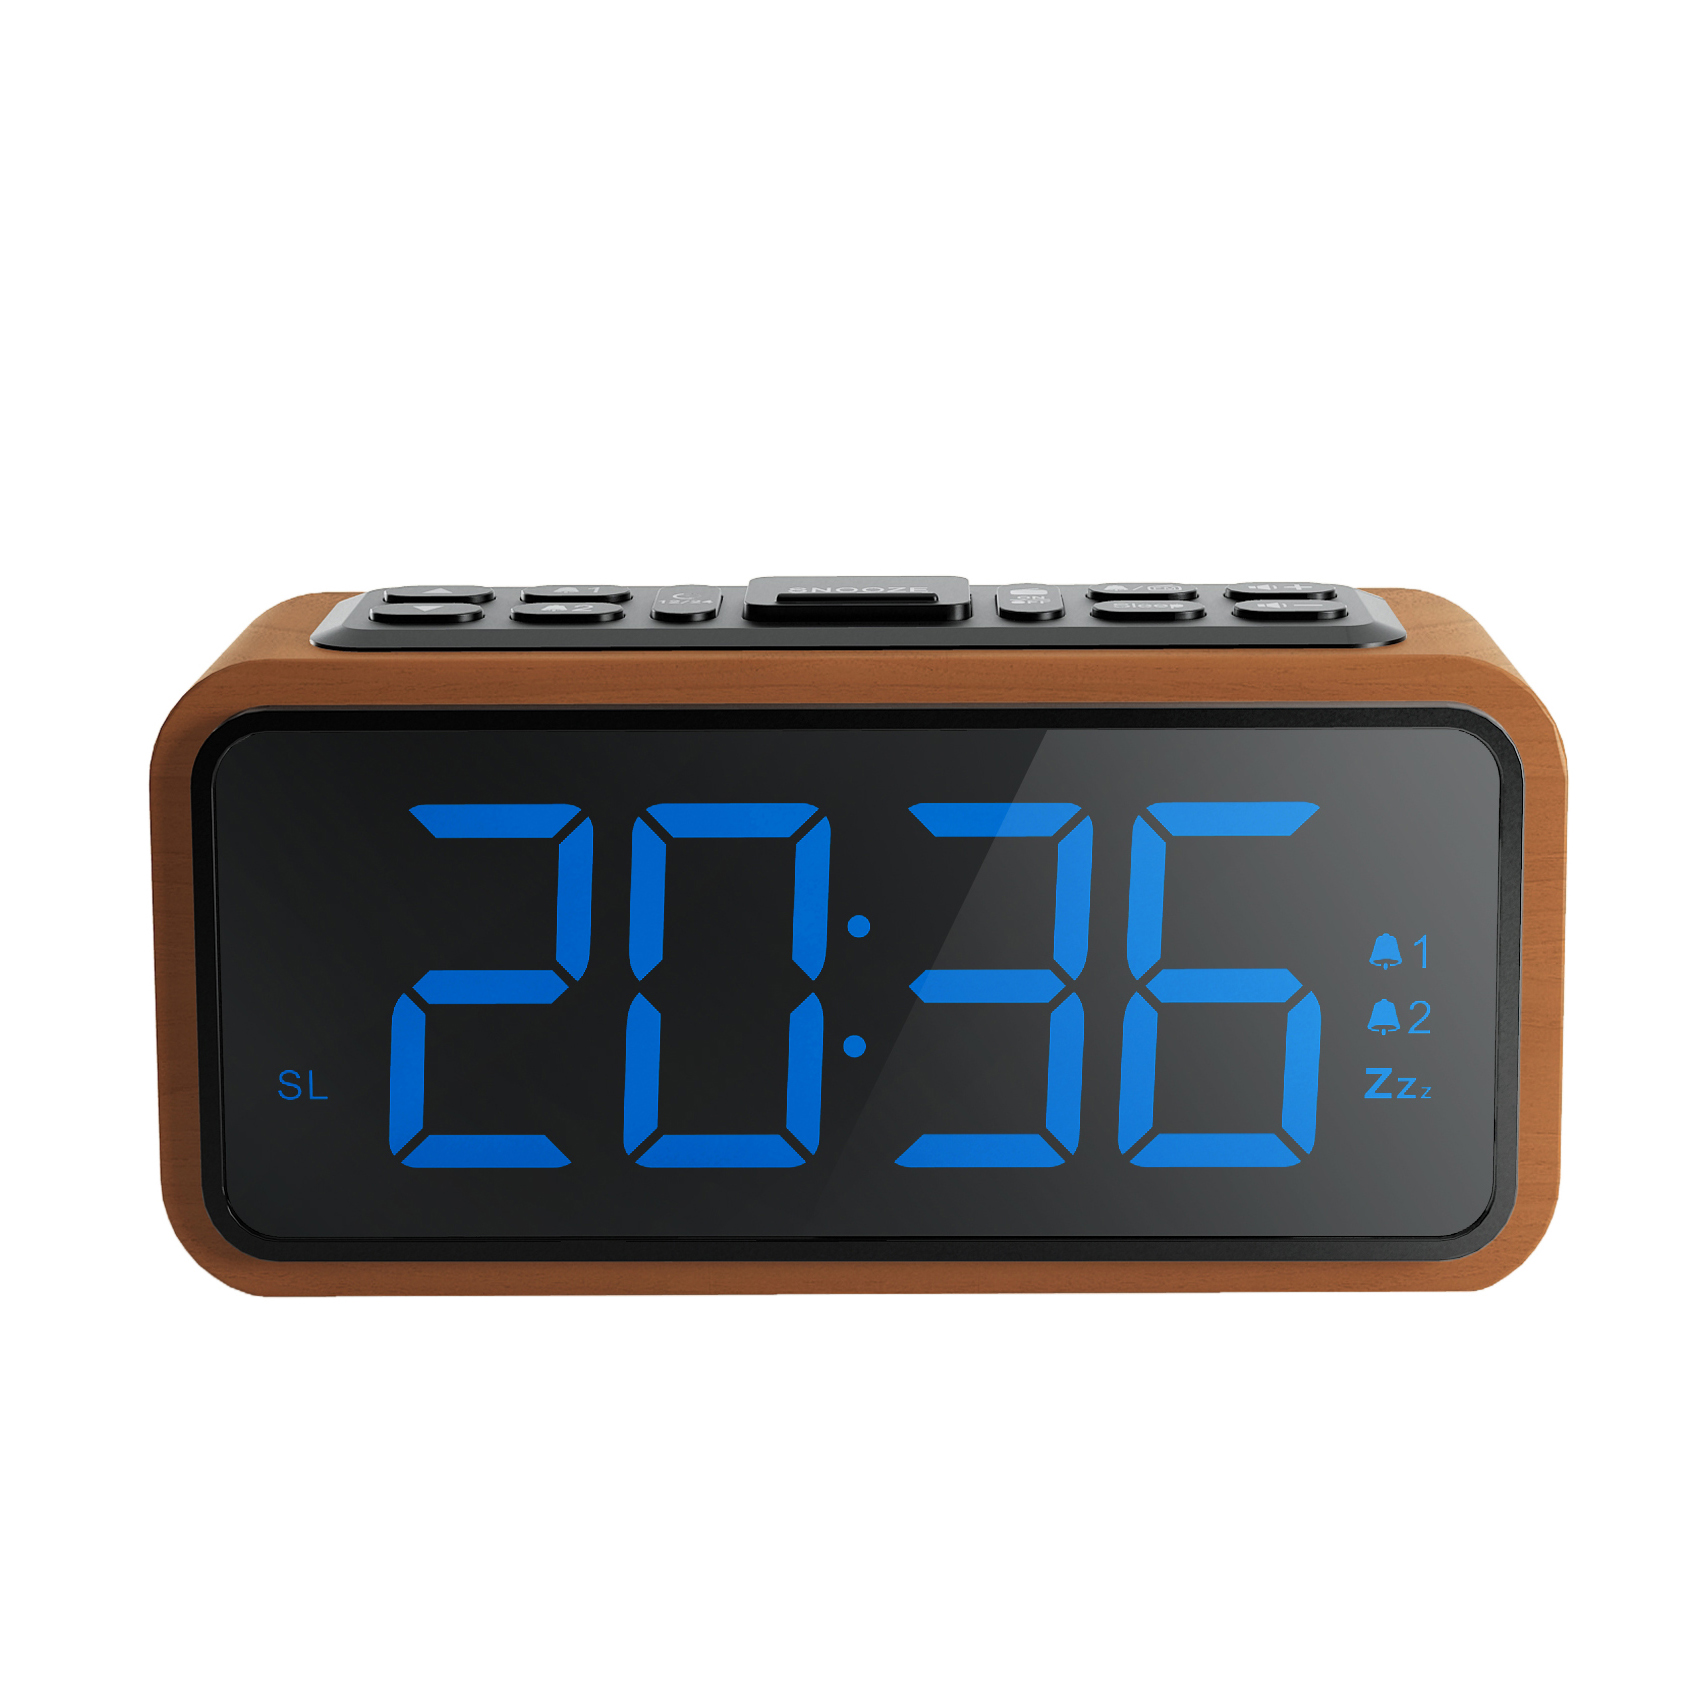 Da tavolo moderna digital clock snooze alarm clock USB